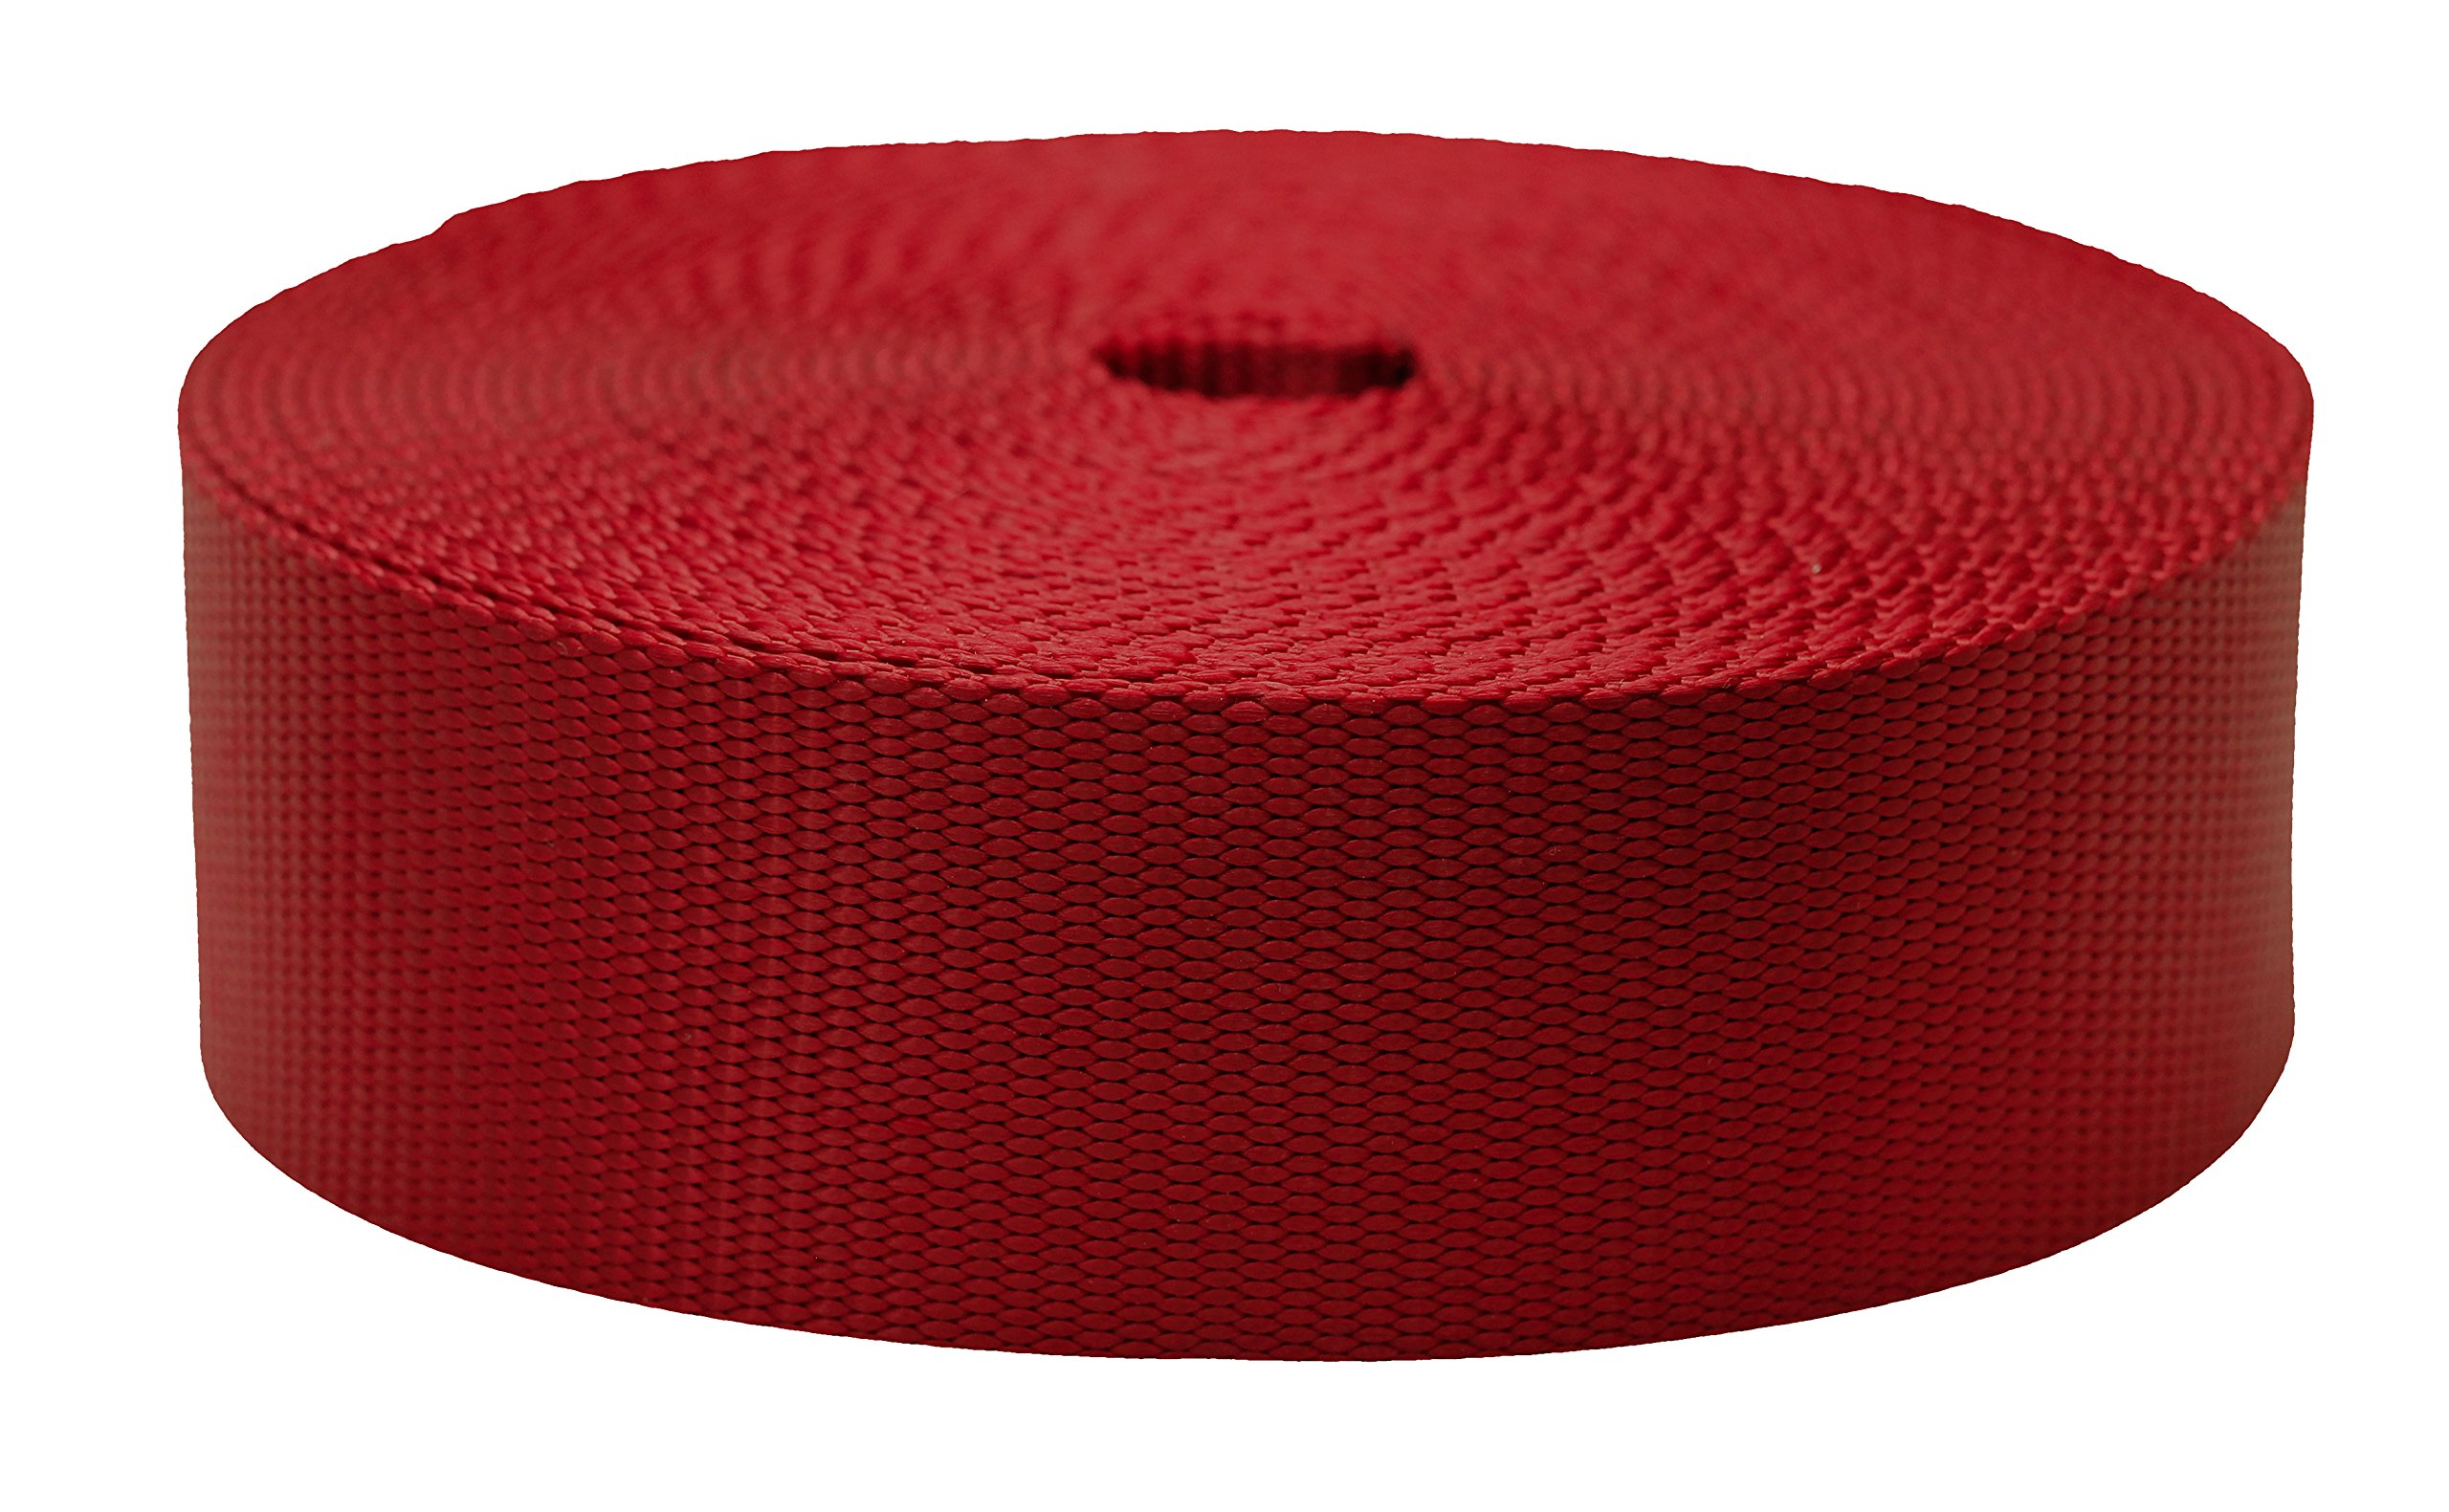 Strapworks Colored Flat Nylon Webbing - Strap For Arts And Crafts, Dog Leashes, Outdoor Activities - 2 Inches x 50 Yards, Dark Red by Strapworks